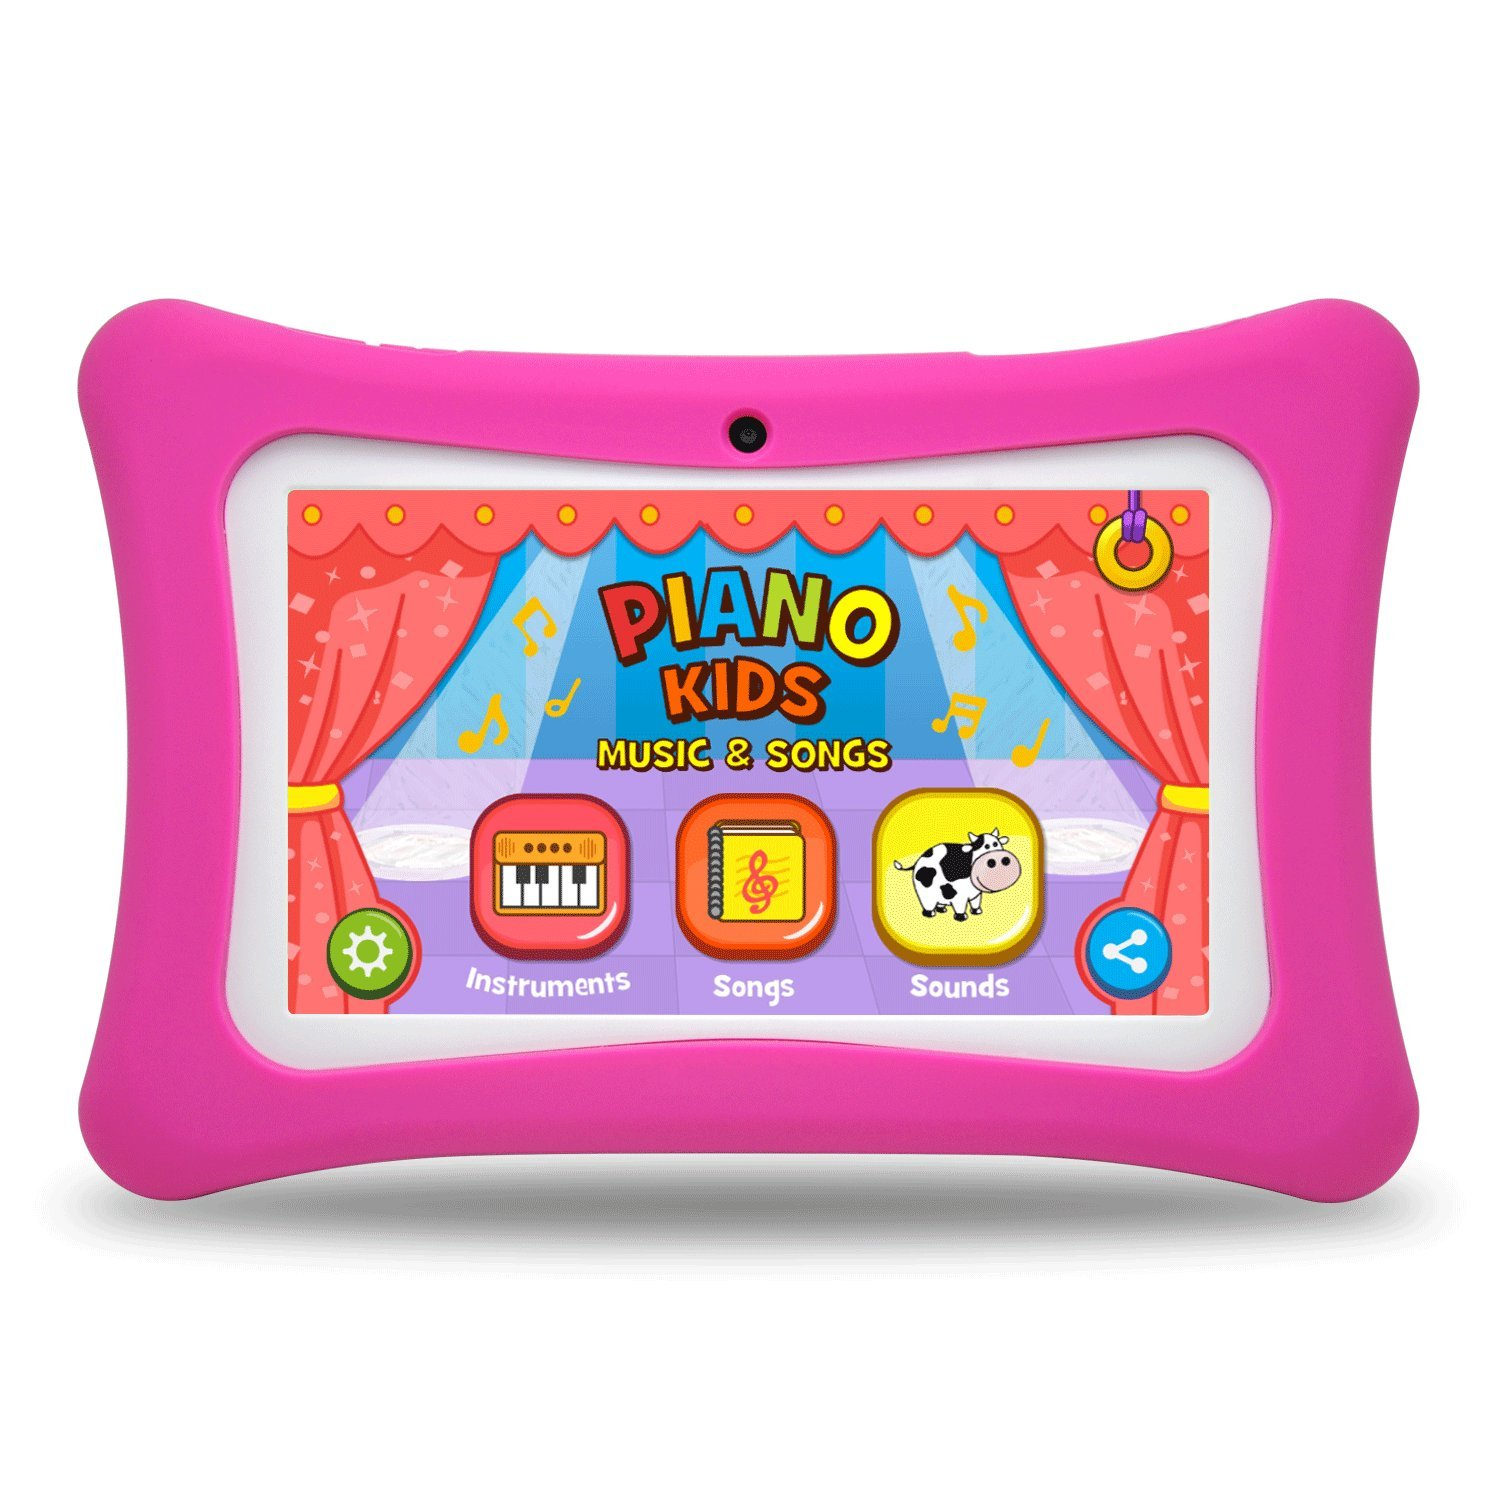 Kids Tablet PC, 7'' HD Eyes-Protection Screen Android 7.1 1GB RAM 8GB ROM Tablet with WiFi Kids Games & Learning Software Pre-Installed for Children's Day Best Gift Set (pink1)